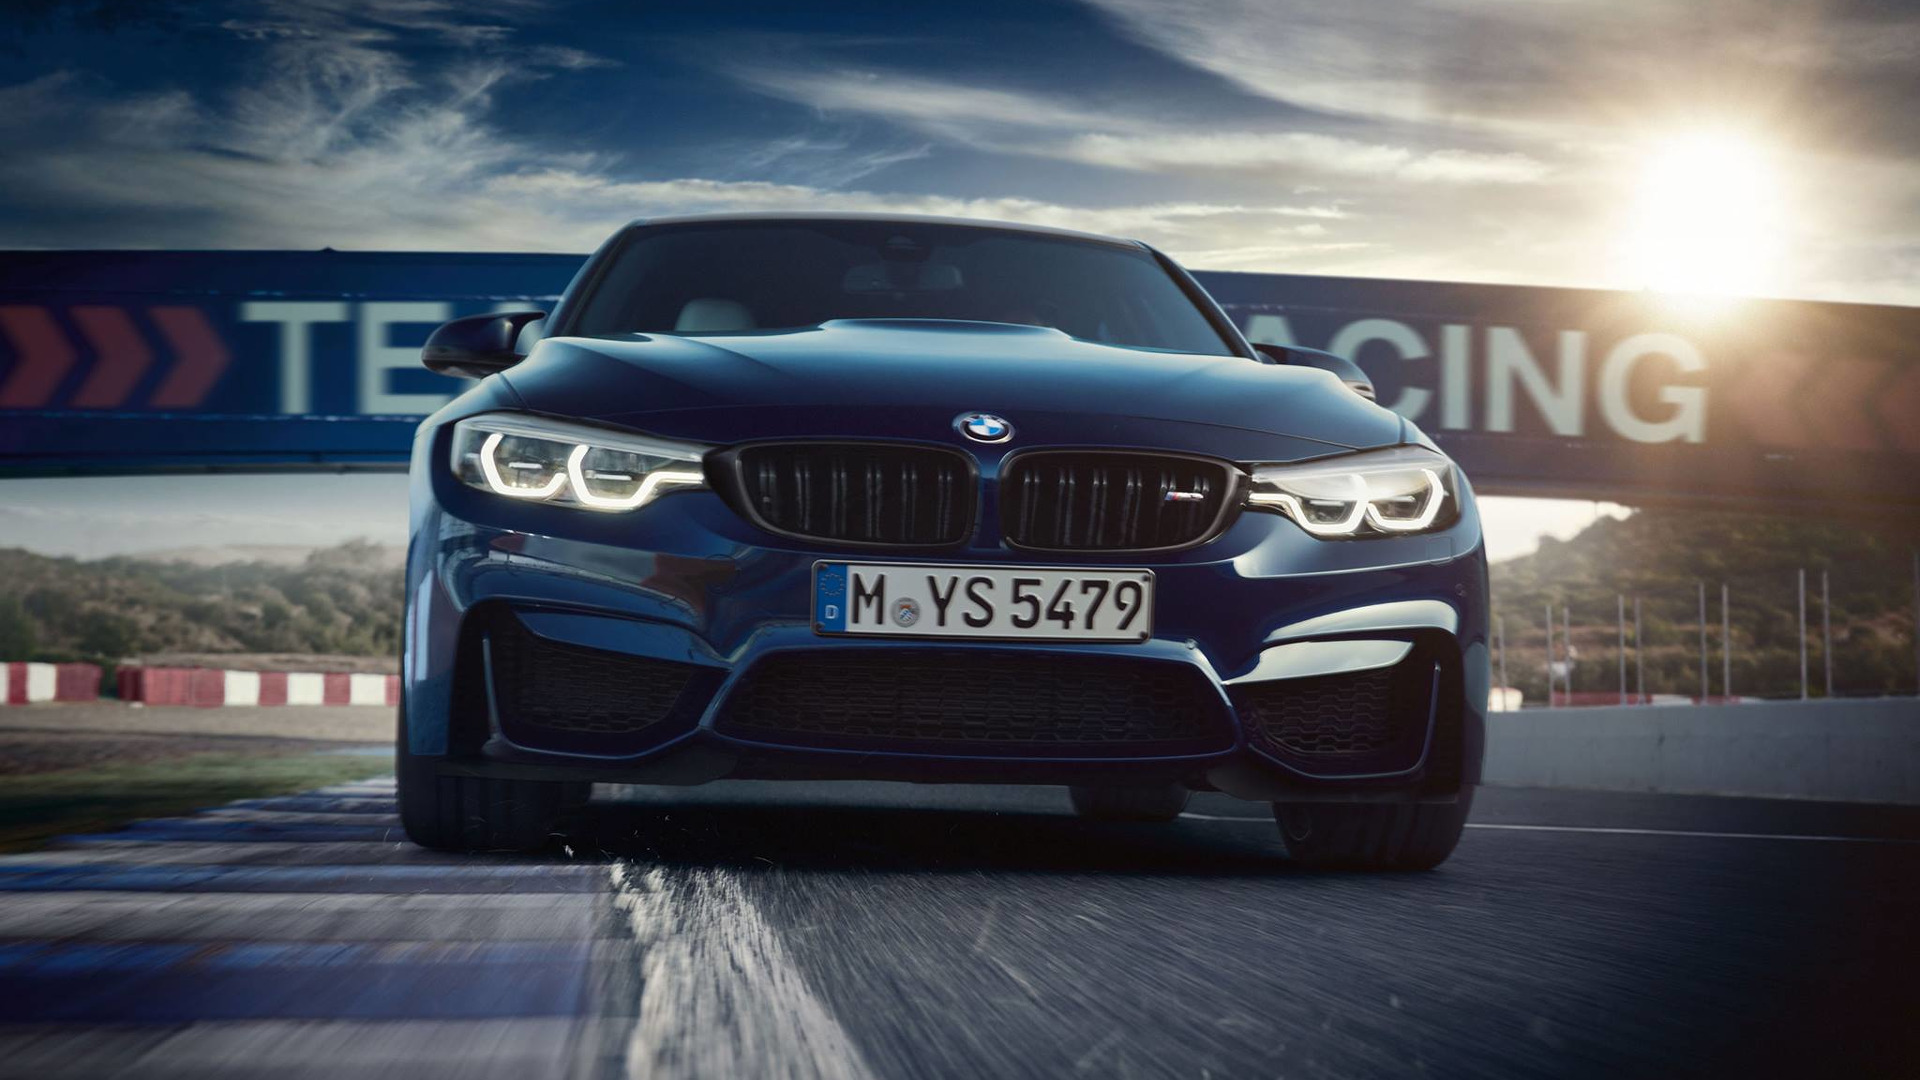 2018 Bmw M3 Revealed With Discreet Facelift